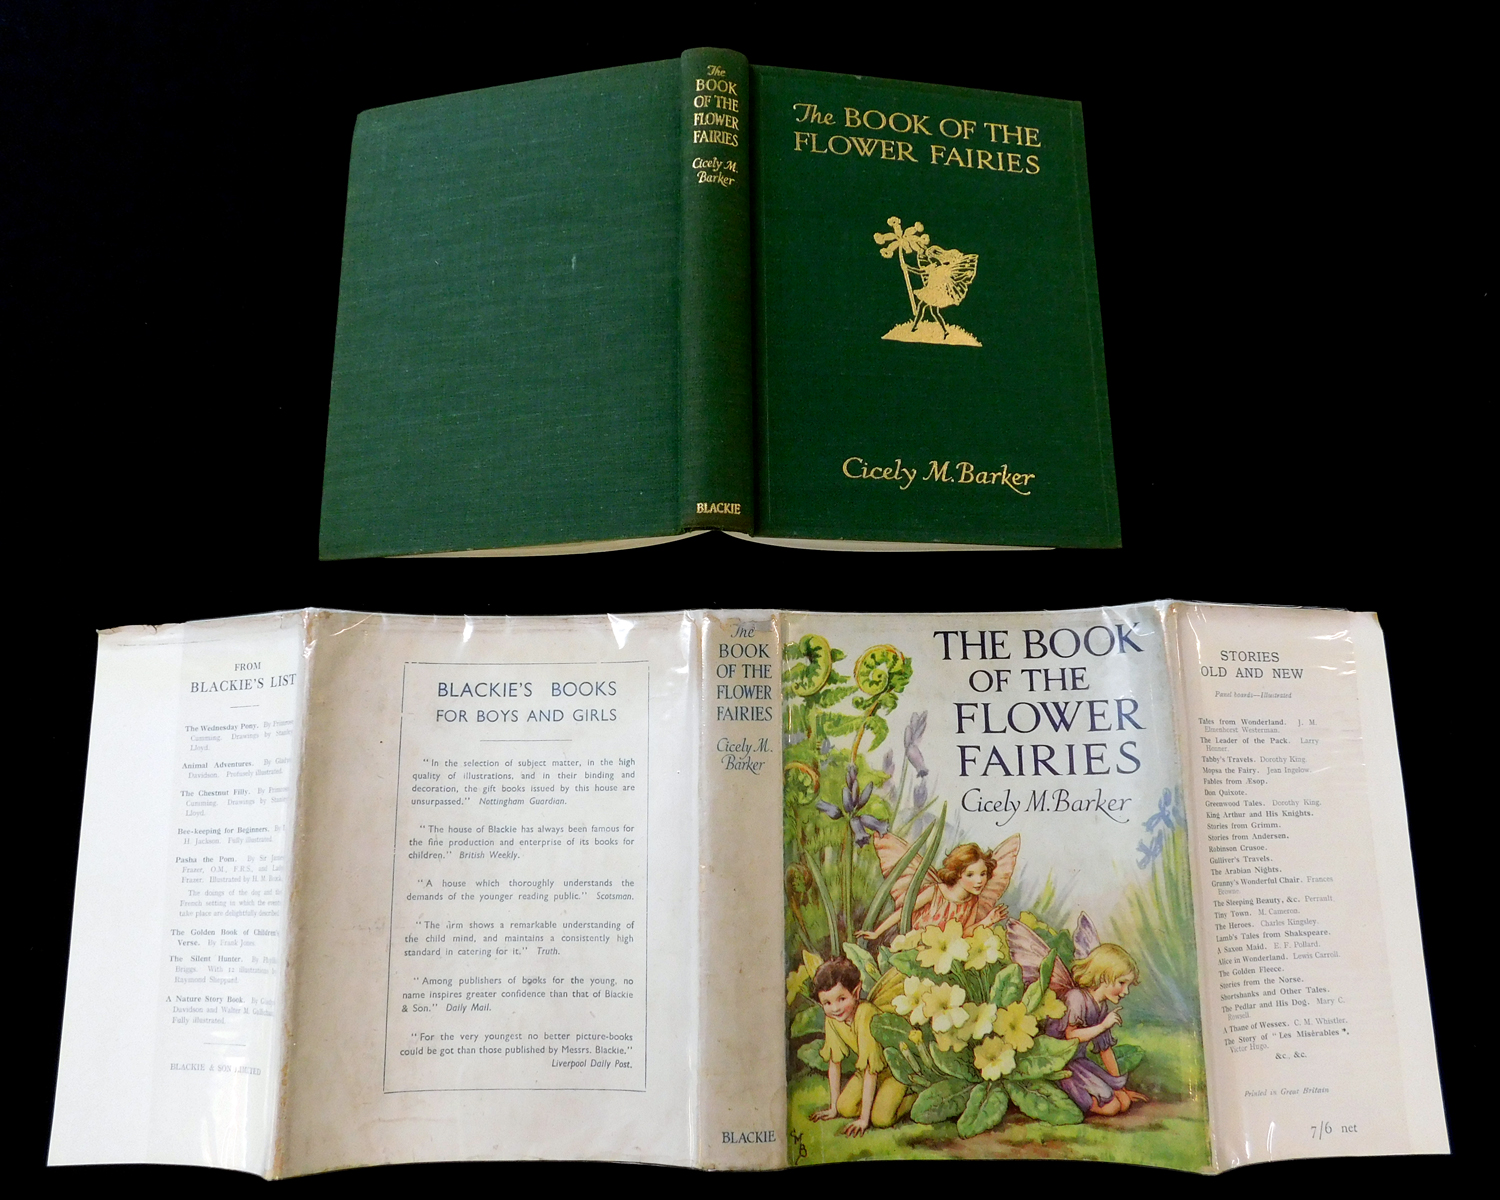 CICELY MARY BARKER: THE BOOK OF THE FLOWER FAIRIES, London and Glasgow, Blackie & Son Ltd, circa - Image 3 of 6